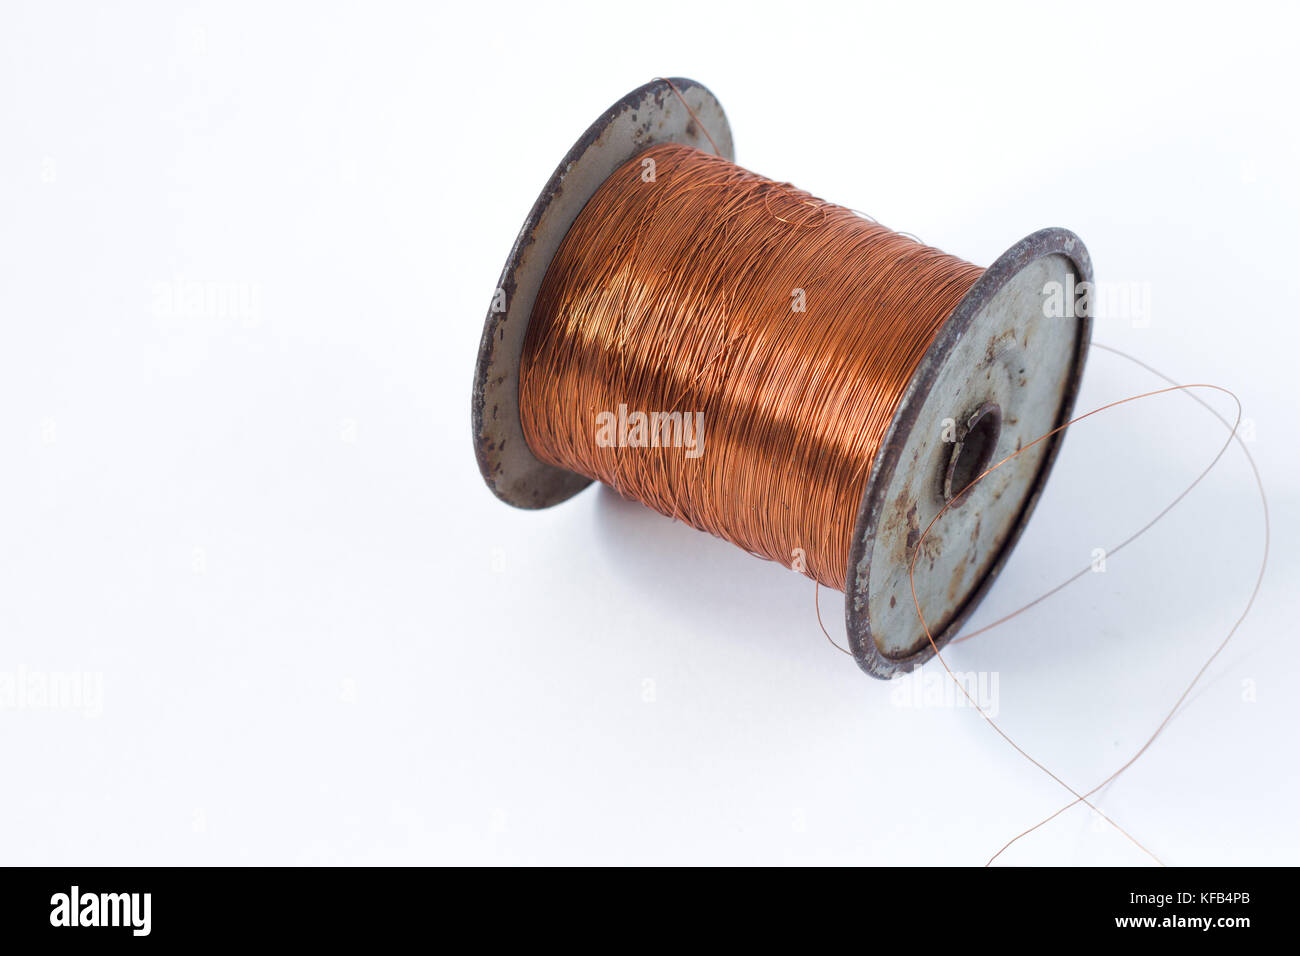 Wire Reel Stock Photos & Wire Reel Stock Images - Alamy